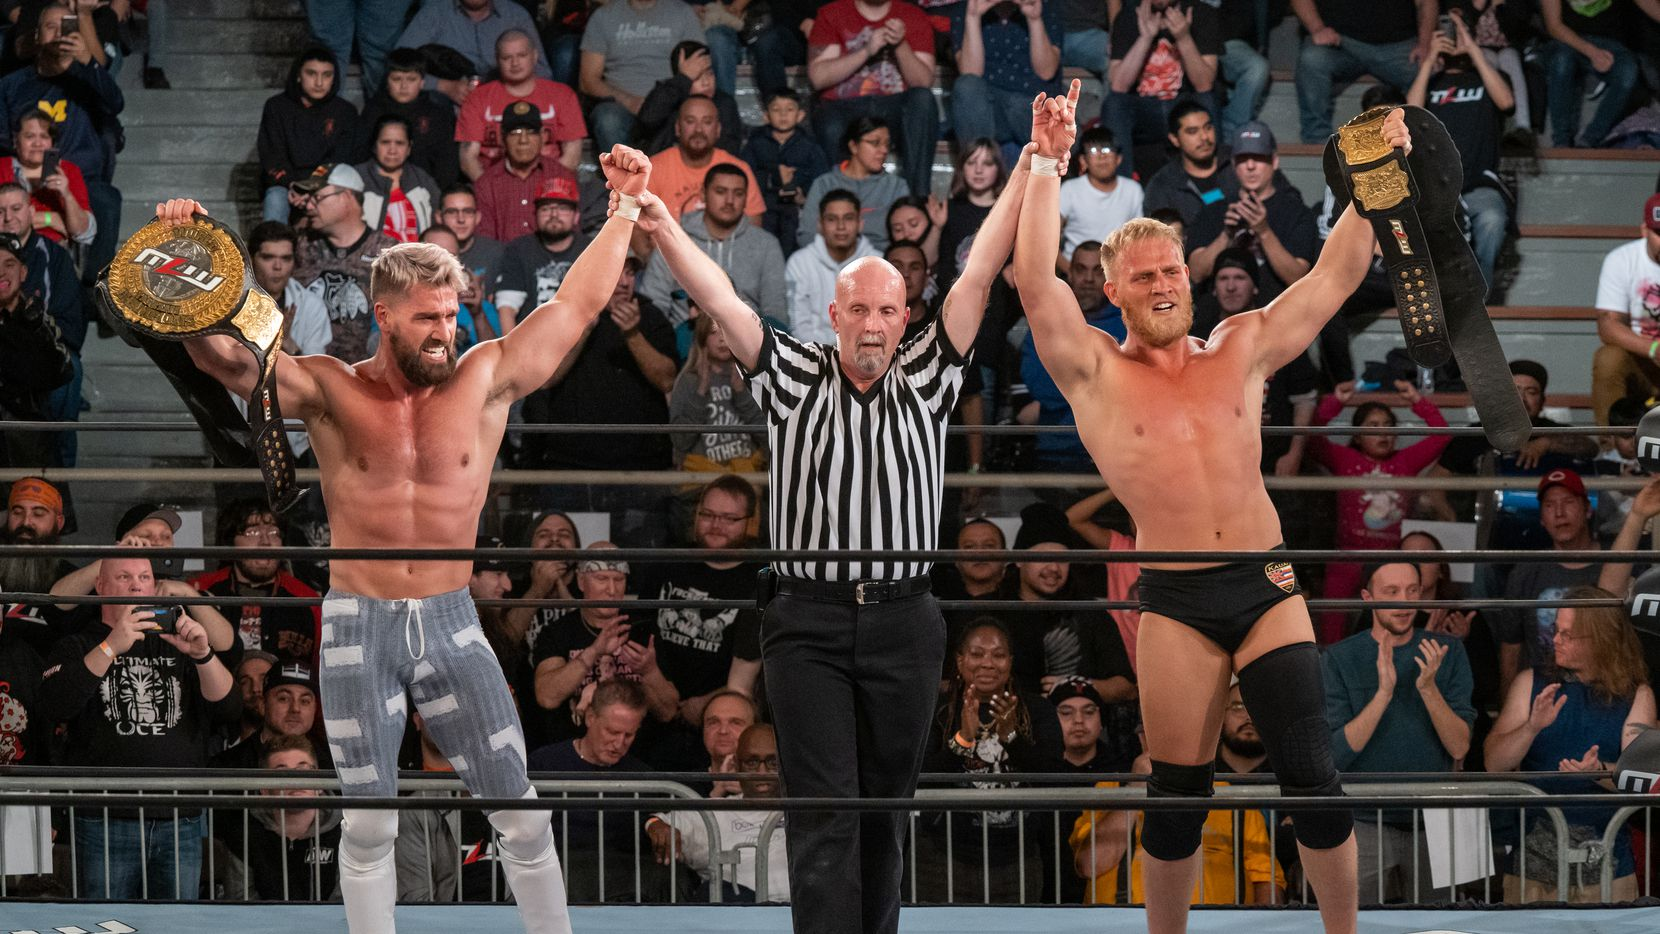 Ross and Marshall Von Erich get their hands raised after winning the MLW World Tag Team Championship in Chicago, November 2, 2019. Courtesy: MLW